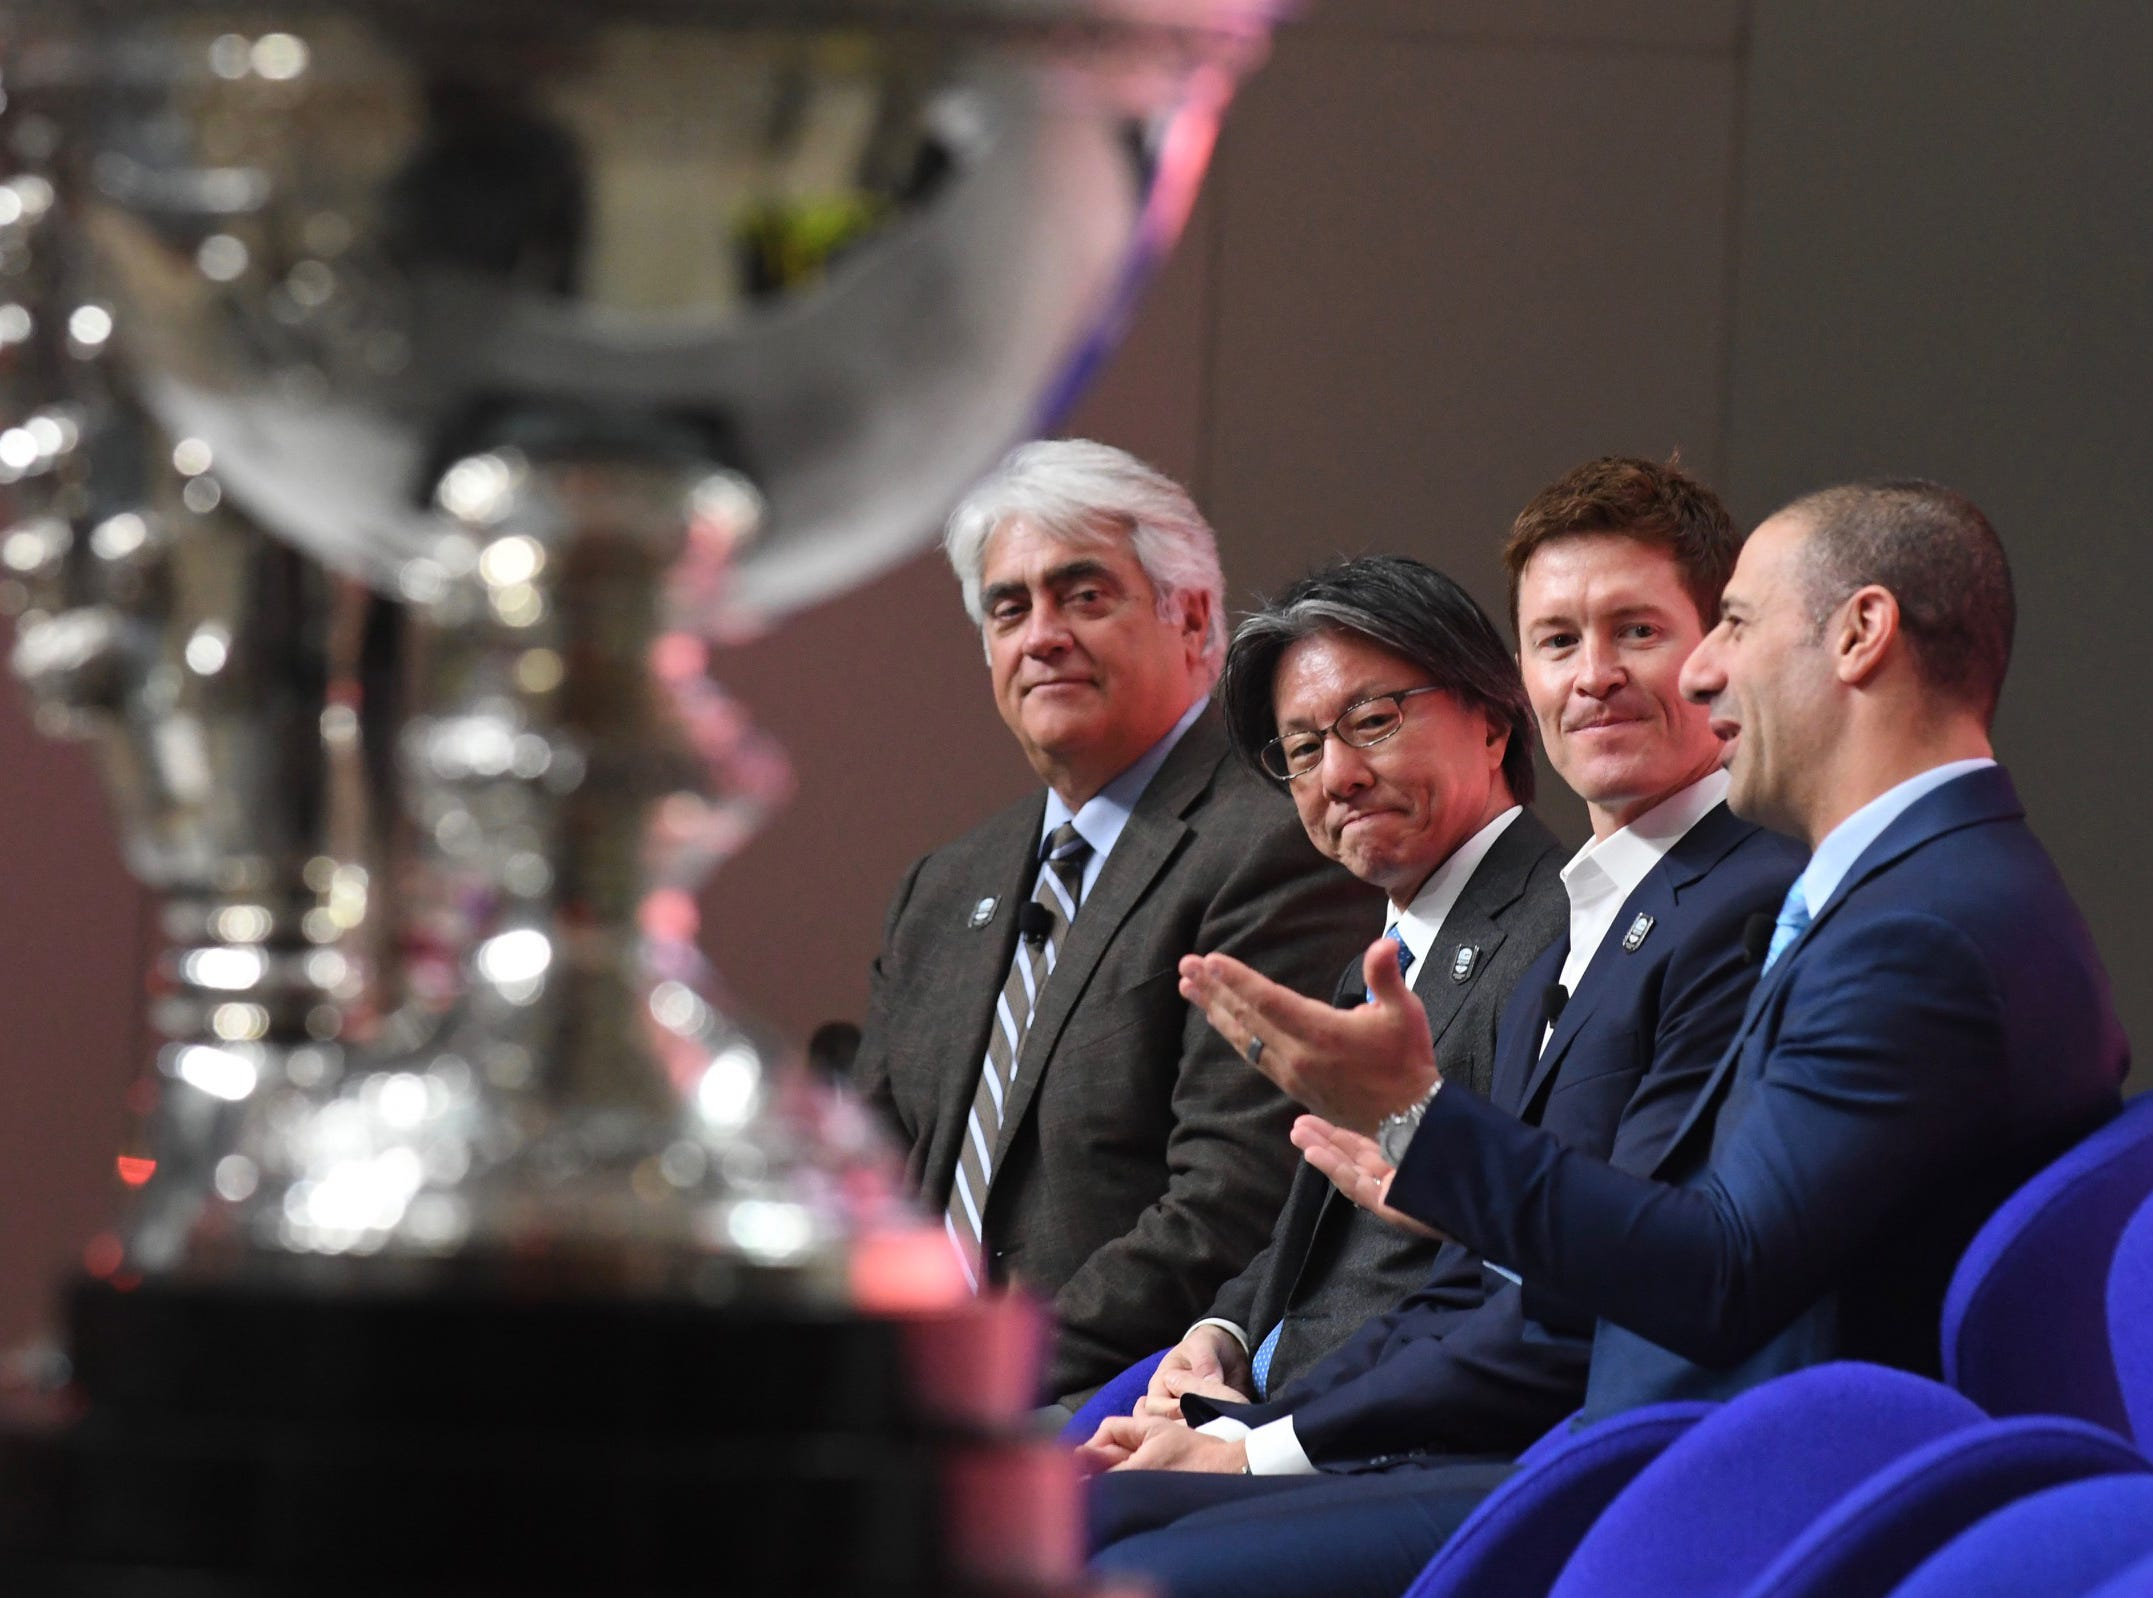 IndyCar's Dixon, Kanaan thrilled to have NTT as new title sponsor